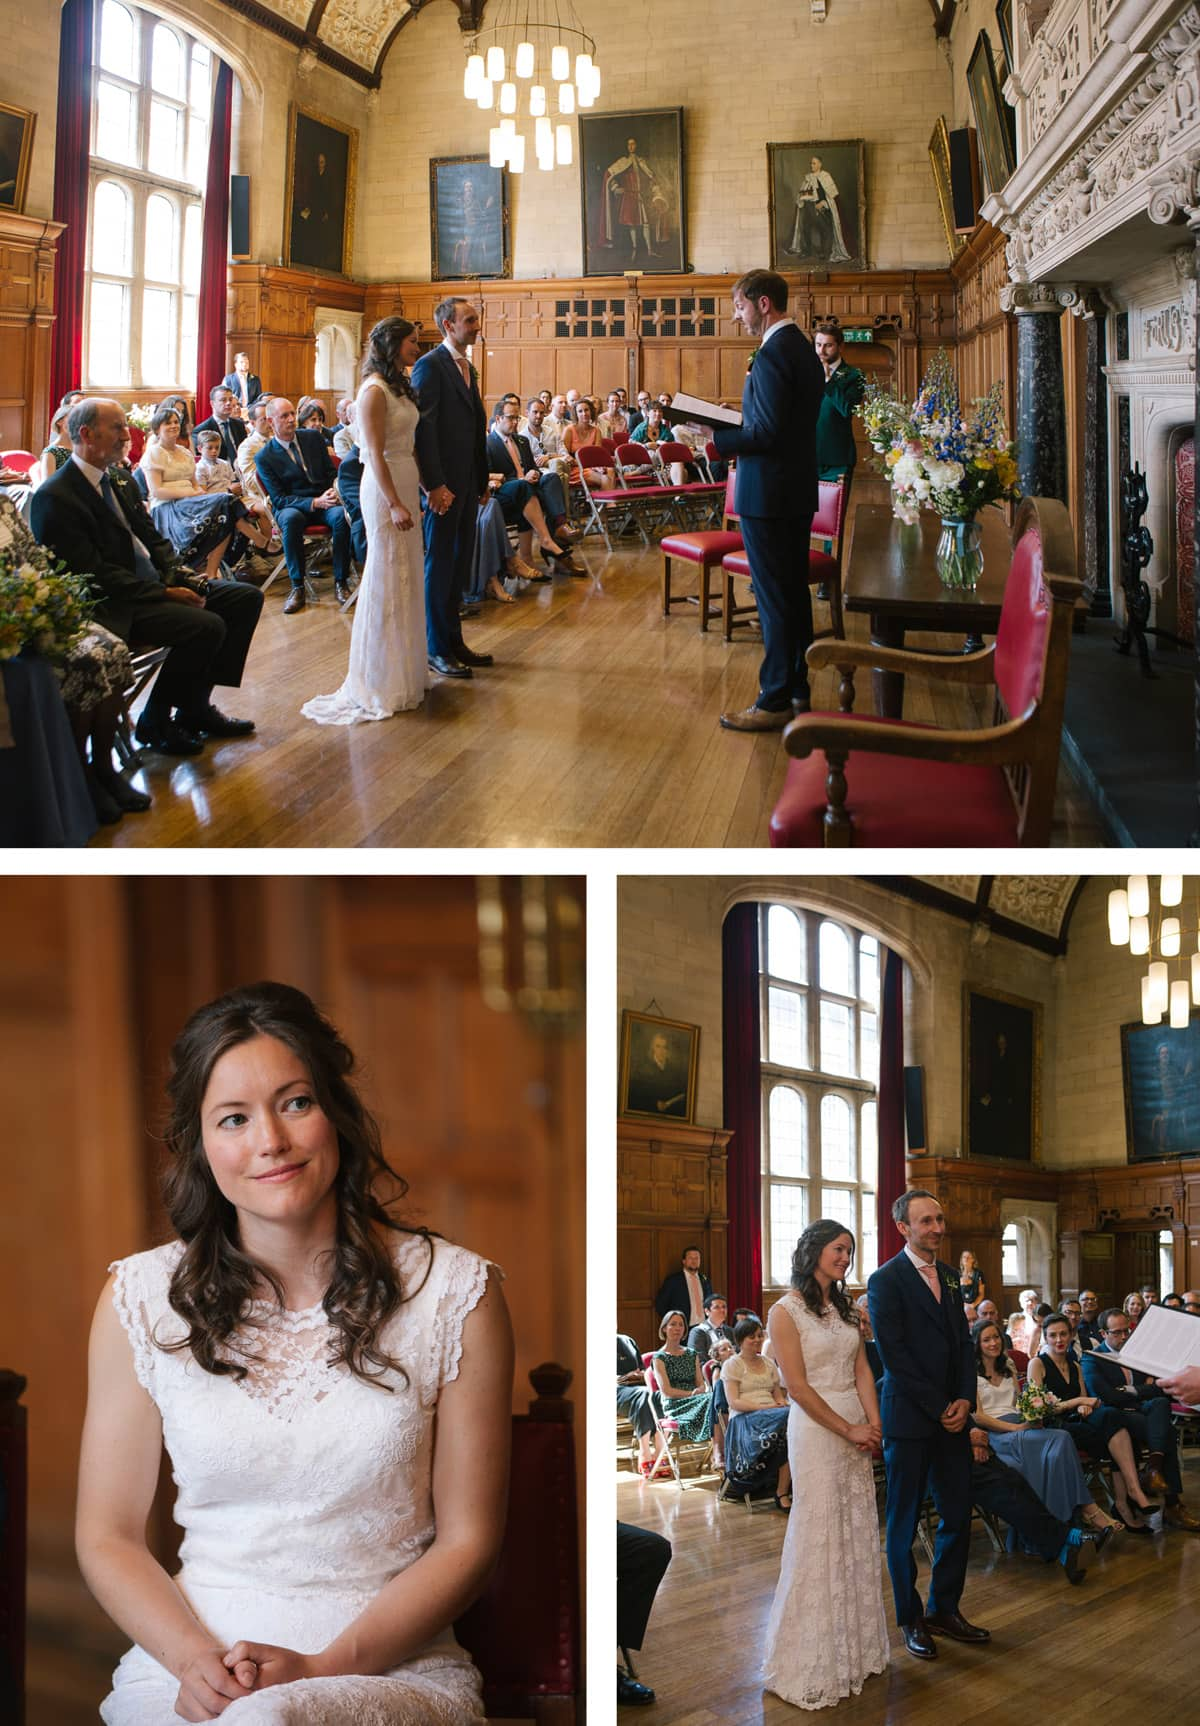 Wedding ceremony at Oxford Town Hall, led by a friend of the couple.